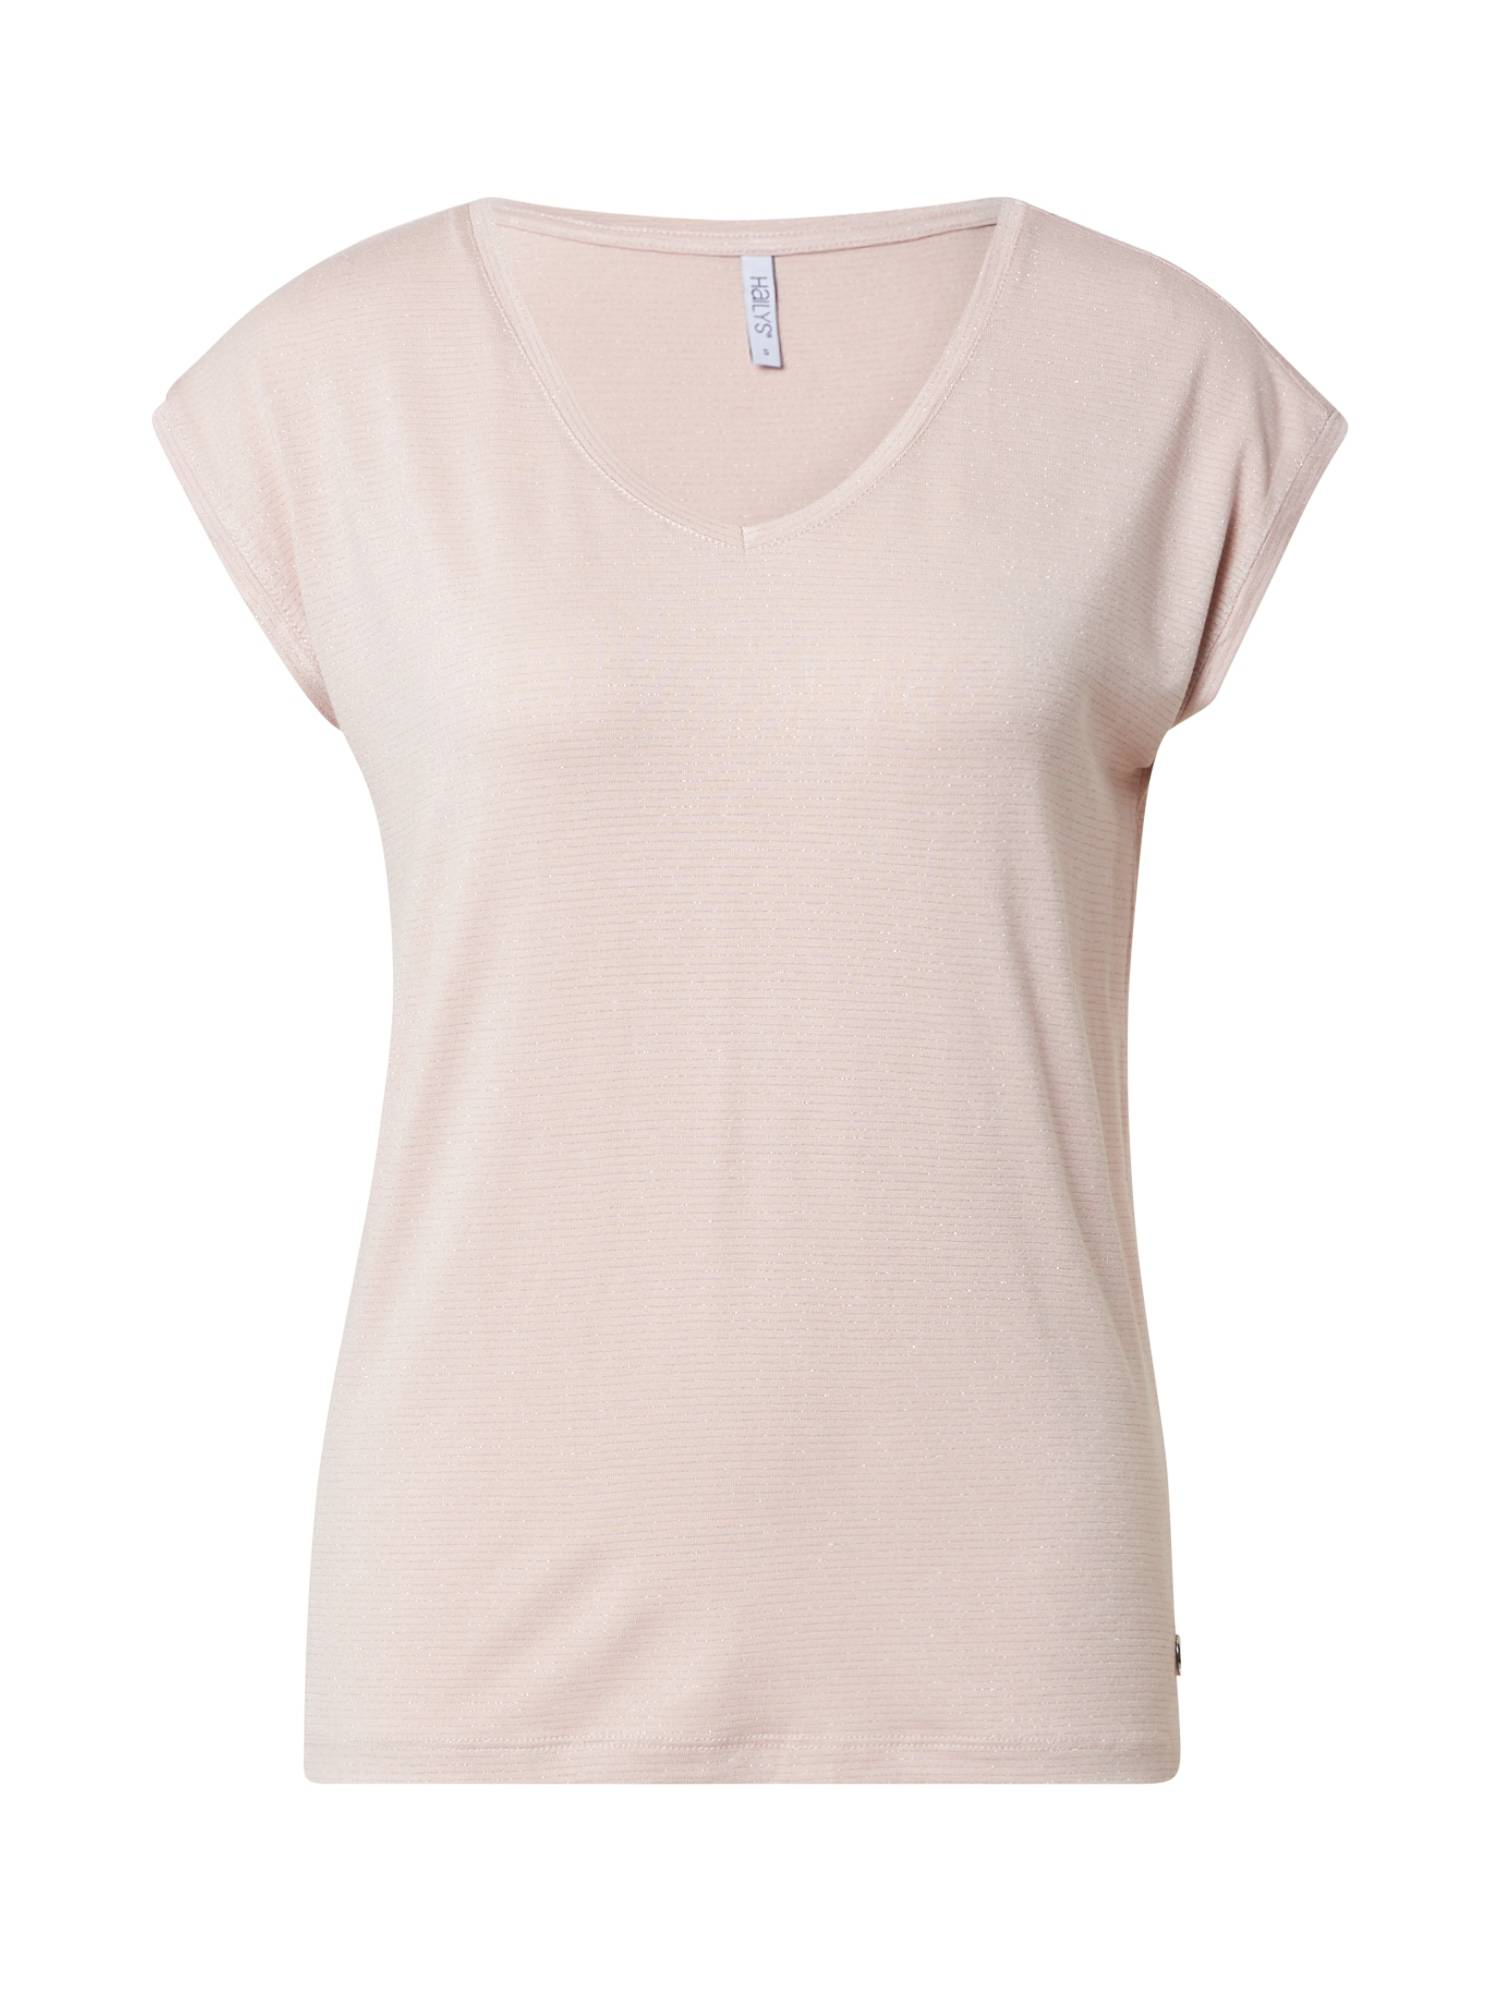 Hailys T-shirt 'TP Luxe'  - Rose - Taille: XXL - female